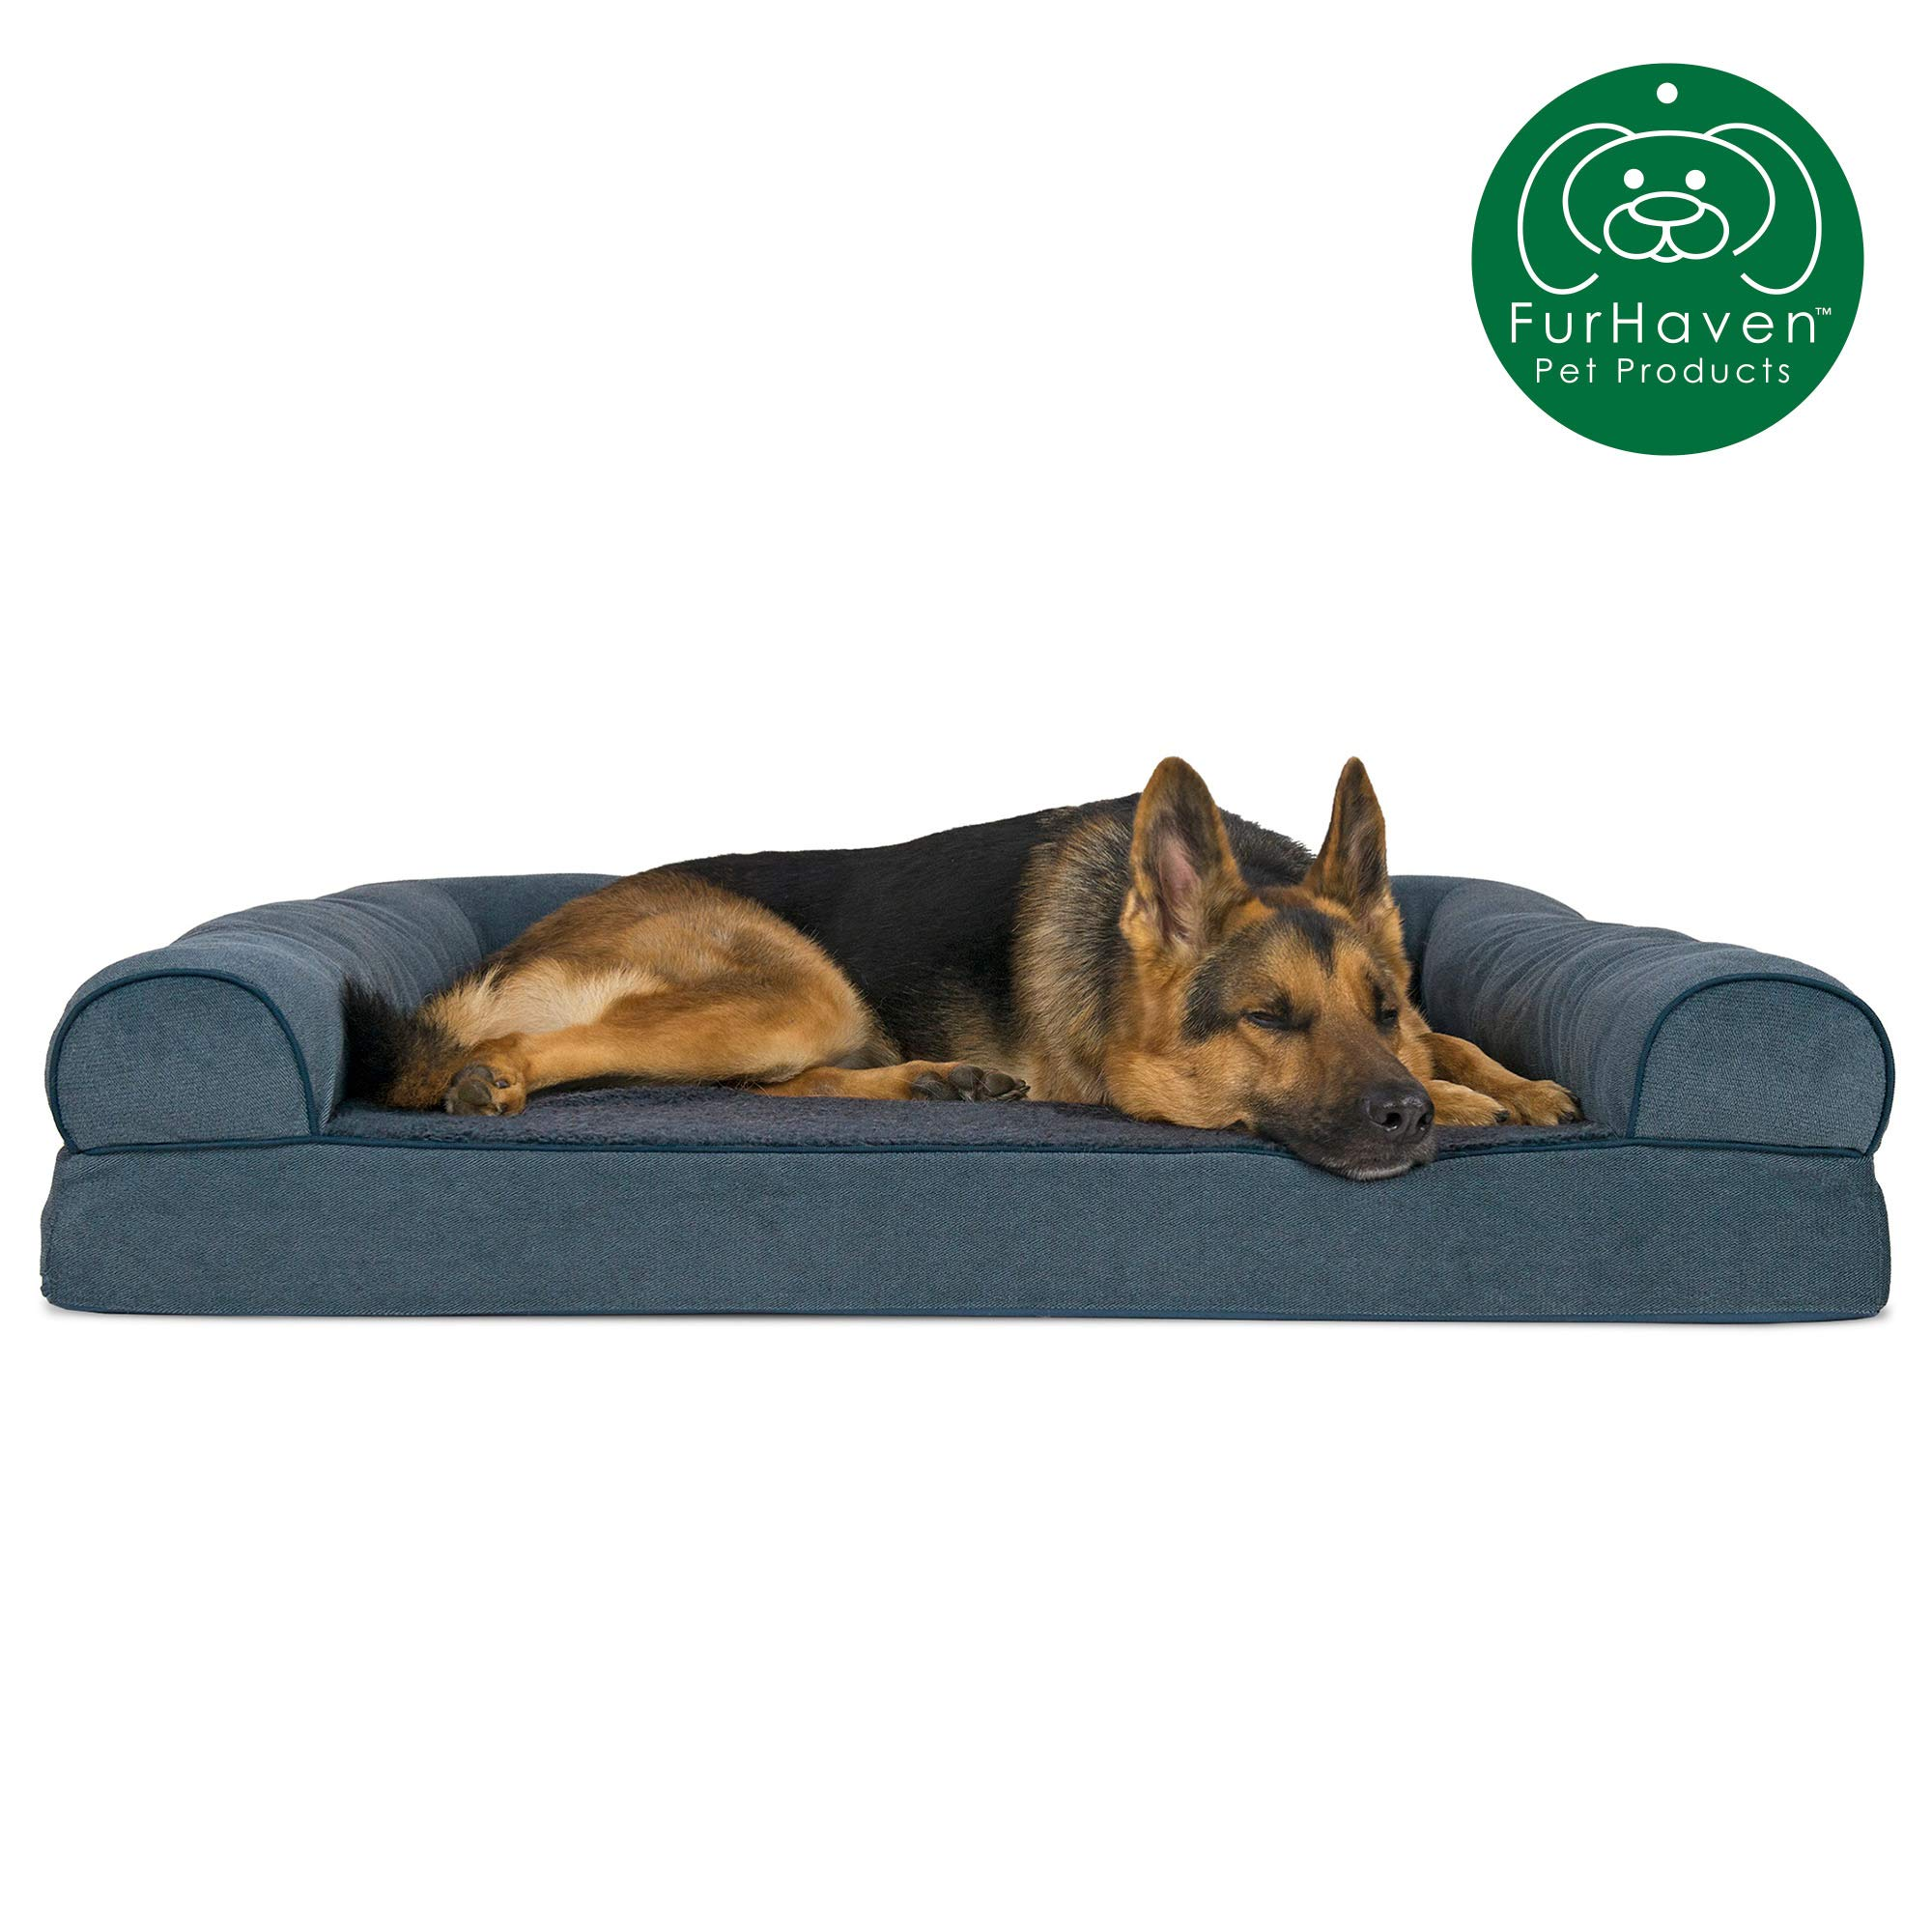 Furhaven Pet Dog Bed | Orthopedic Faux Fleece & Chenille Soft Woven Traditional Sofa-Style Living Room Couch Pet Bed w/ Removable Cover for Dogs & Cats, Orion Blue, Jumbo by Furhaven